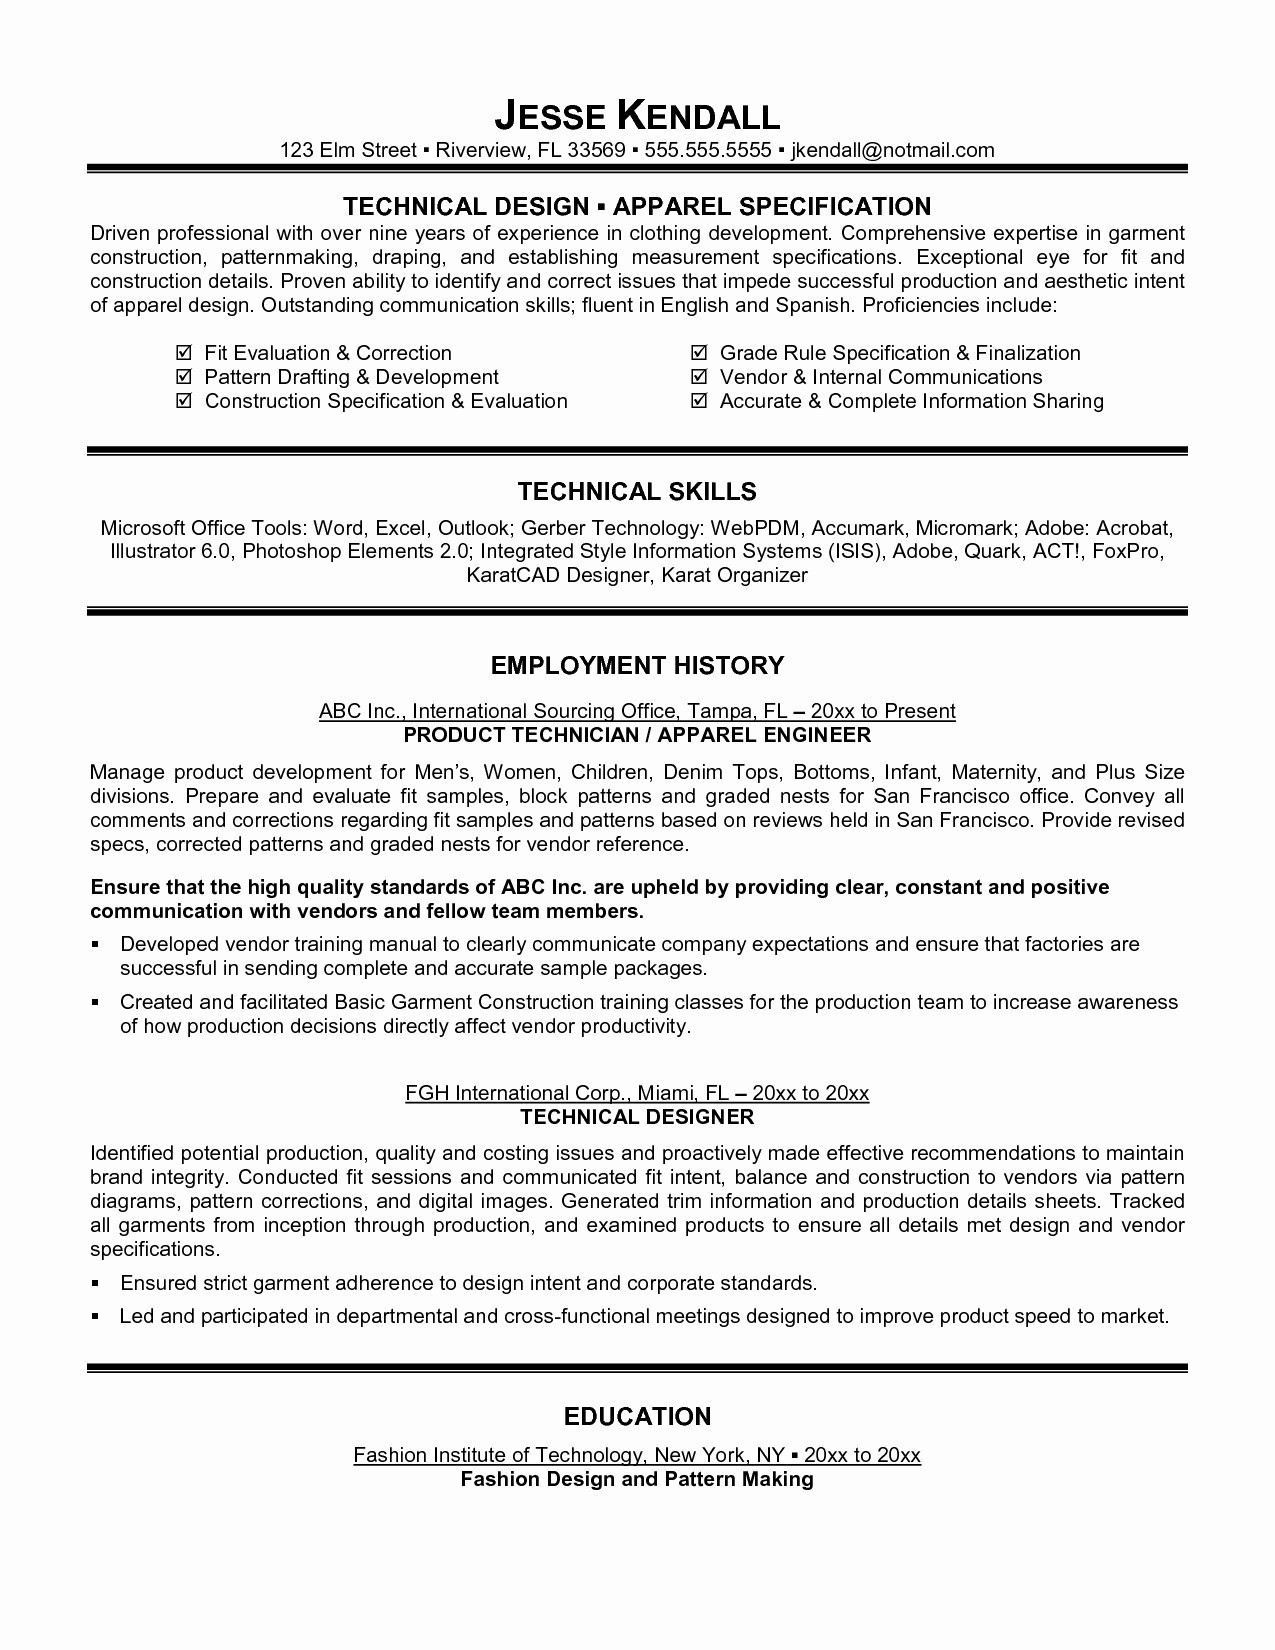 Technology Resume Template Word - Construction Resume Template Inspirational Resume Examples 0d Skills